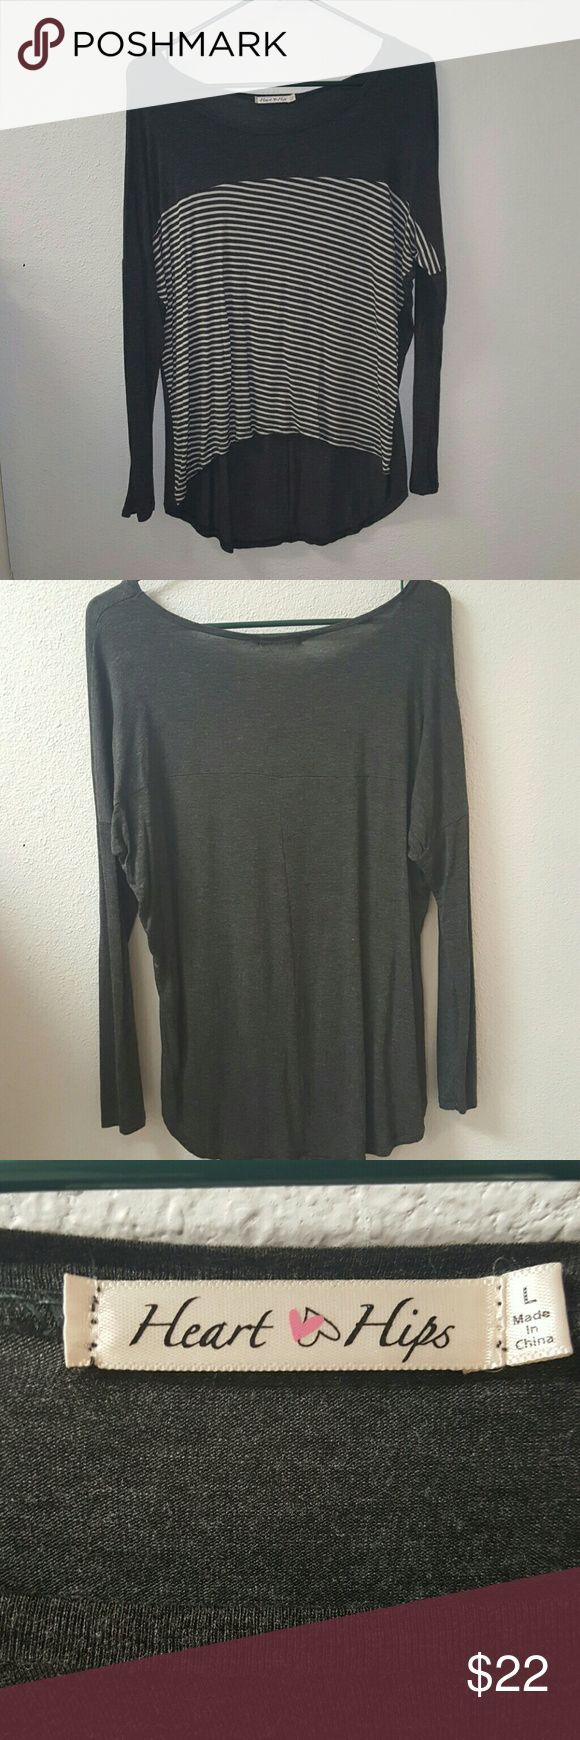 NWOT charcoal and white top. Nwot supper soft long sleeve  charcoal gray and qhite top. Tops